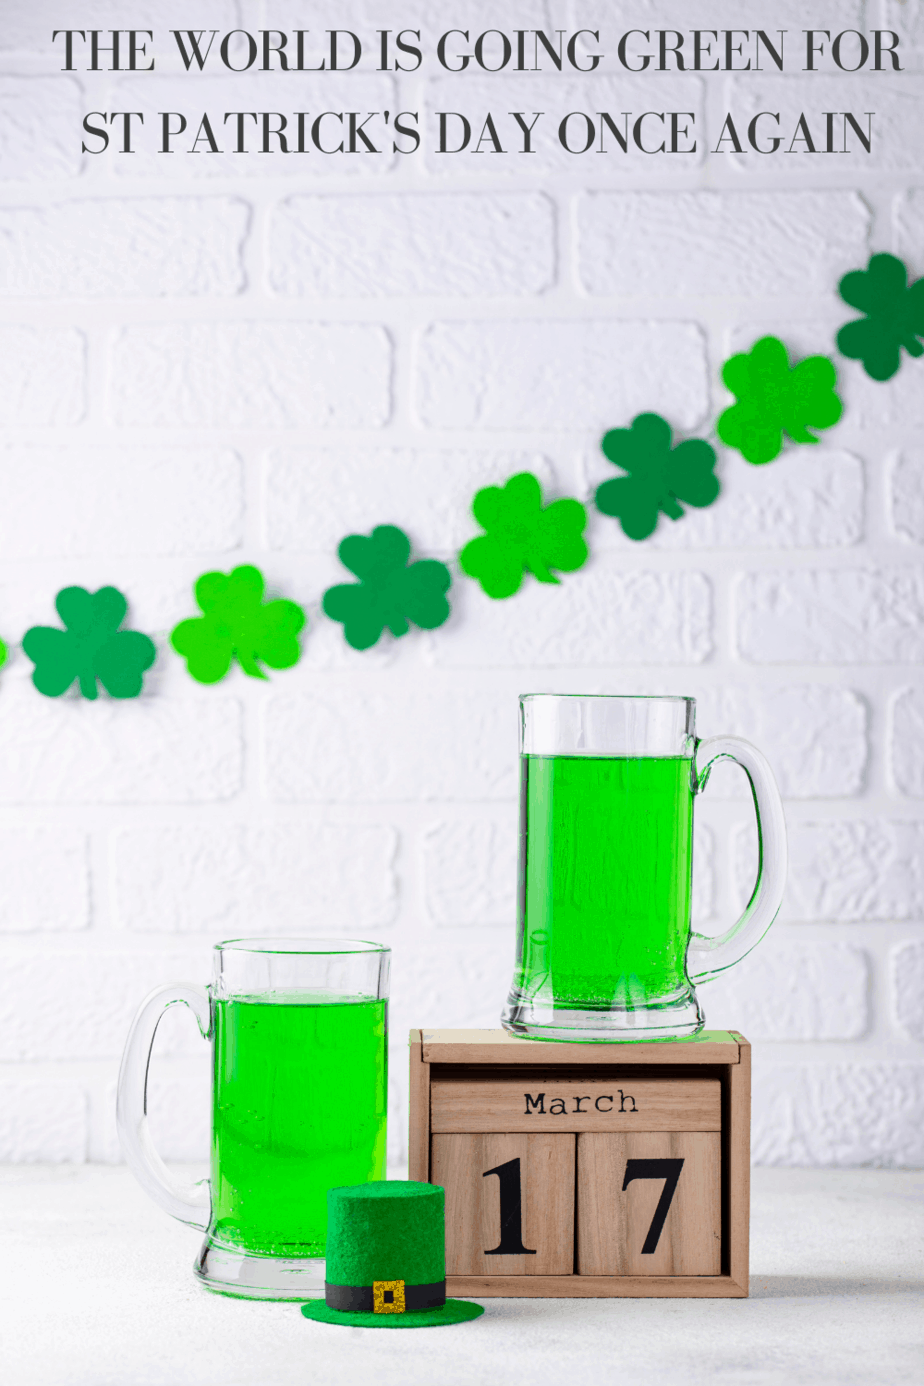 The world going green once again for St Patrick's day 2021